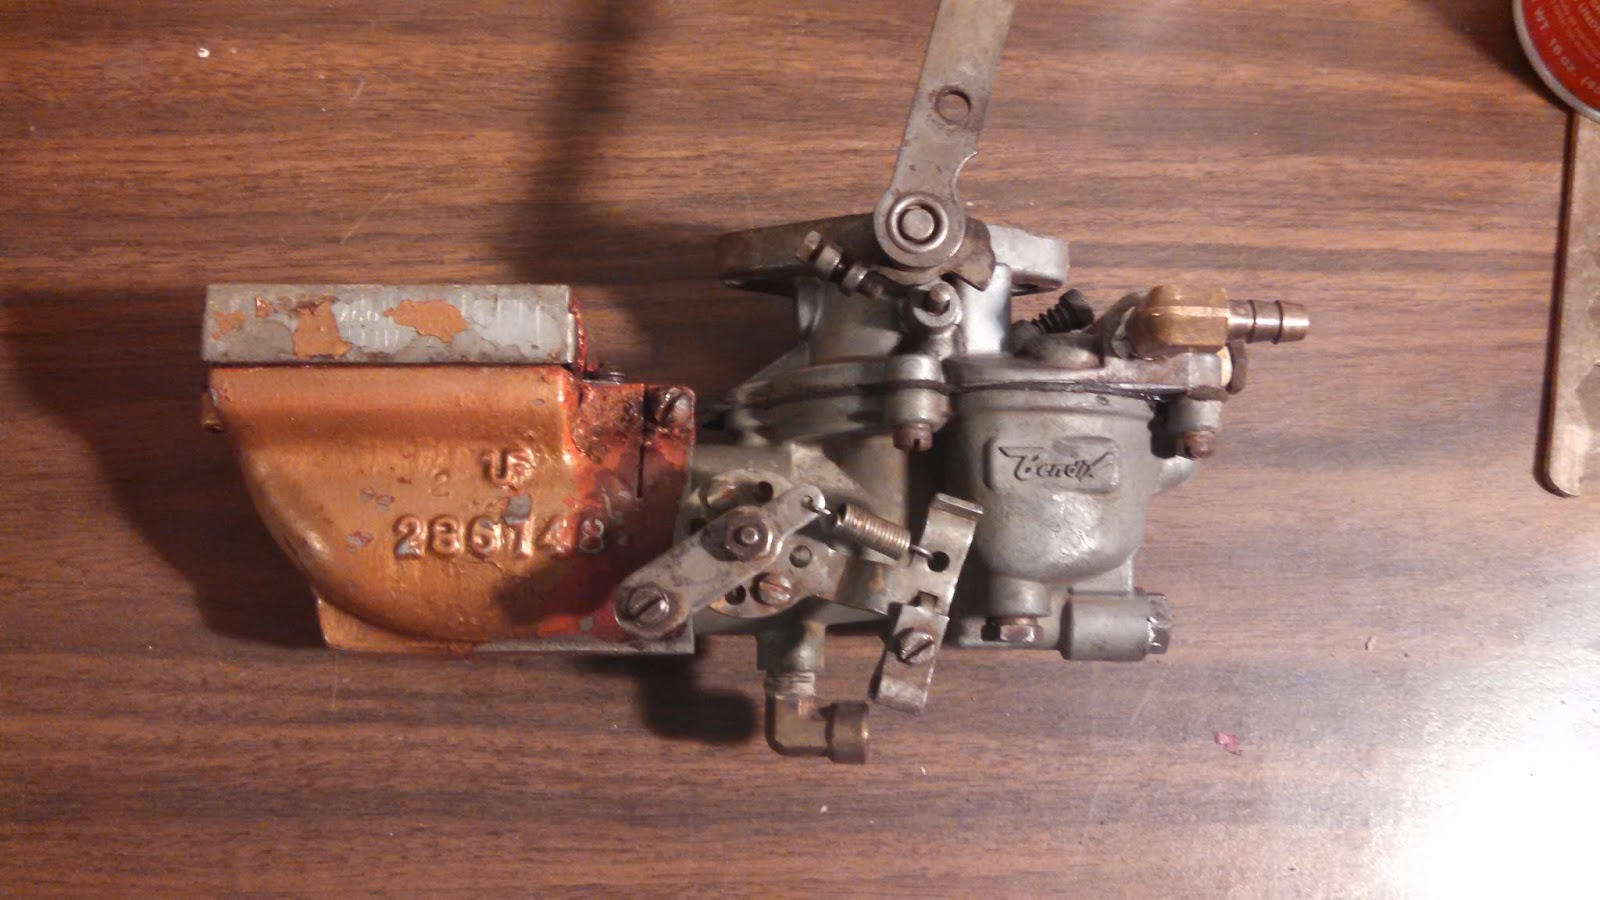 I had occasional starting problems with the Atomic 4. The dirty carburetor  appears to be the culprit.